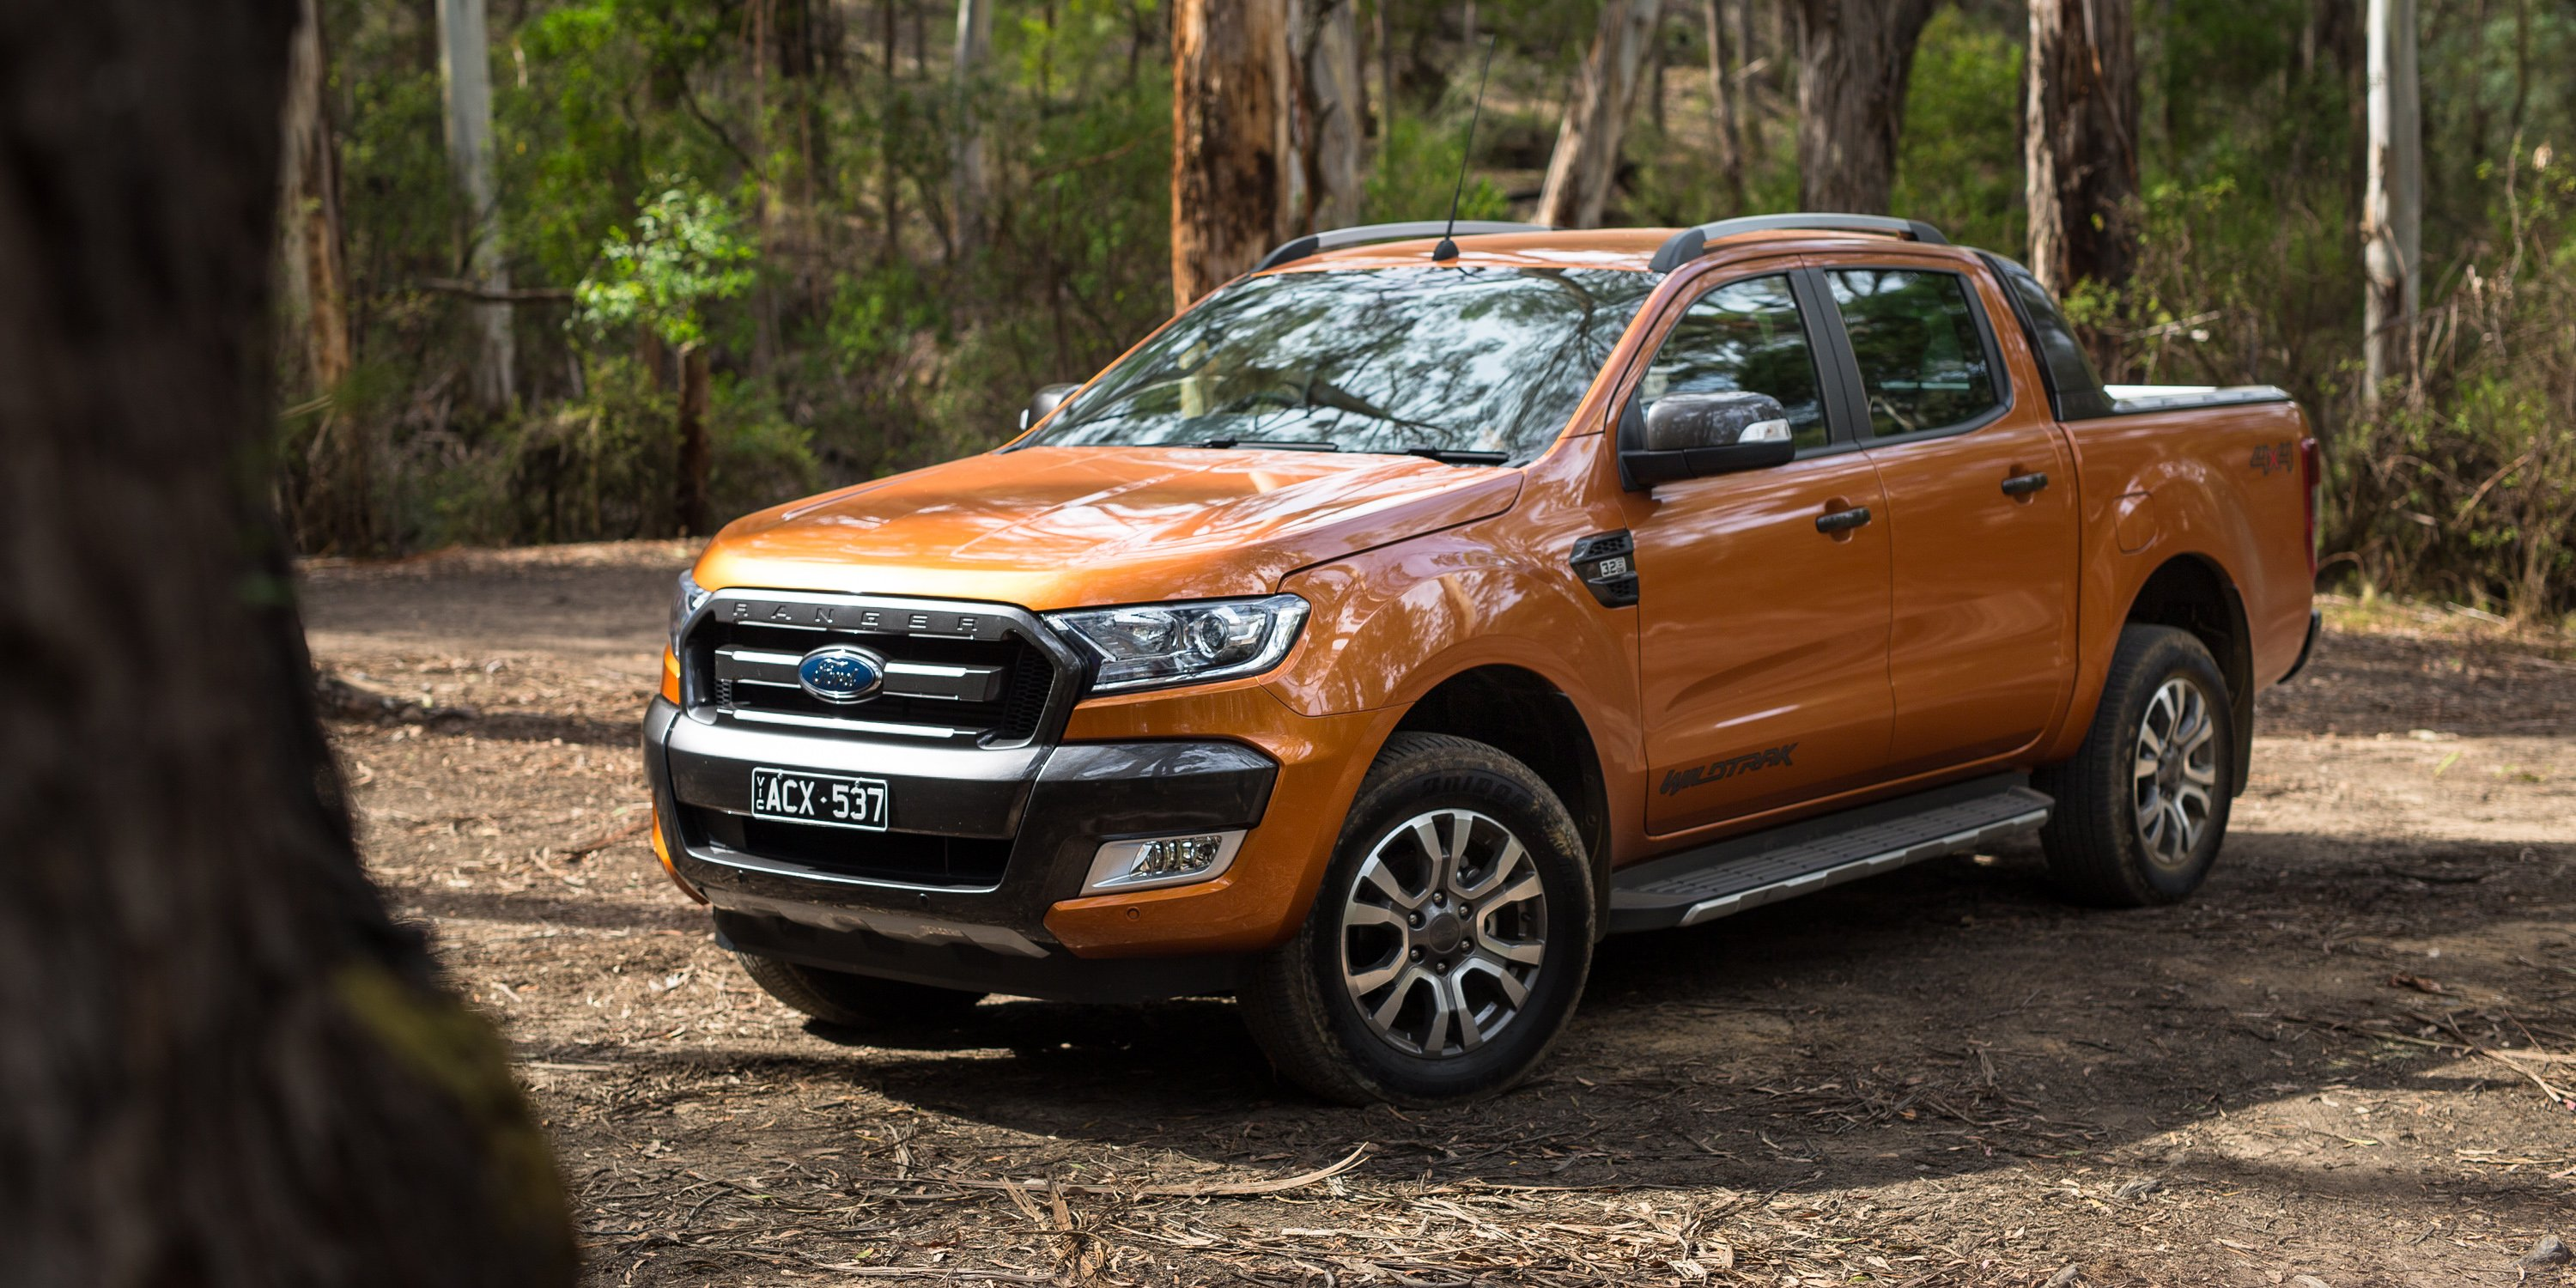 2016 ford ranger - photo #7